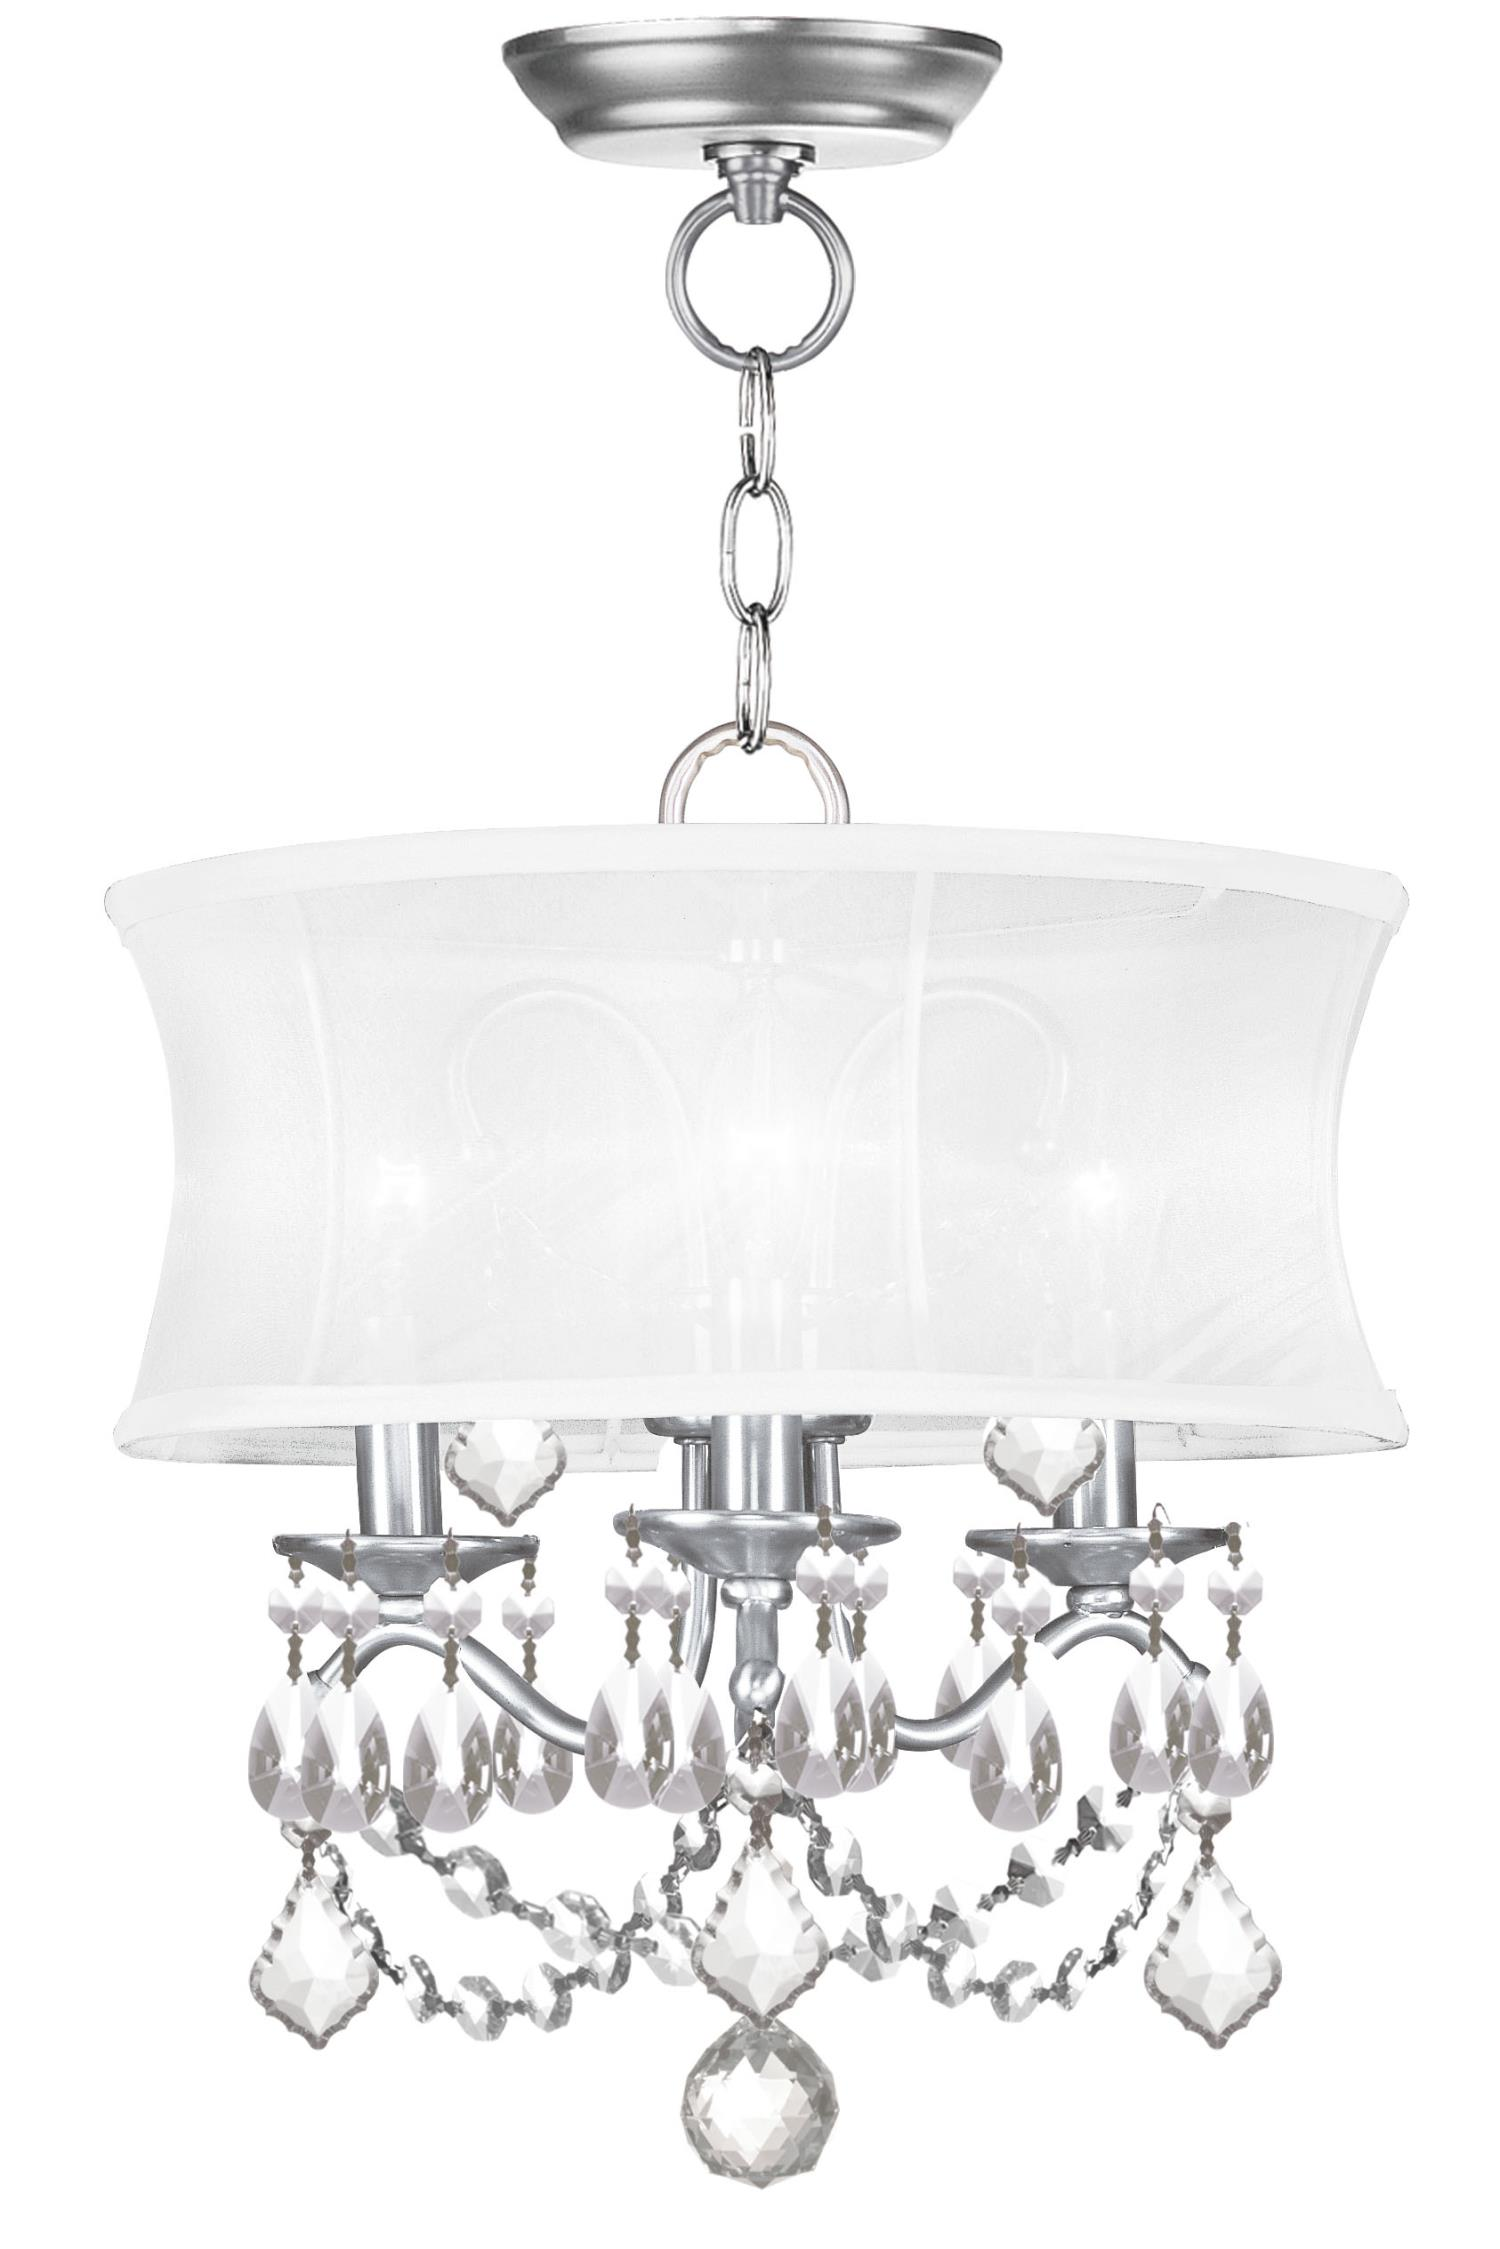 Charming Livex Lighting 6303 91 Pendants From The Newcastle Collection For Home Lighting Ideas